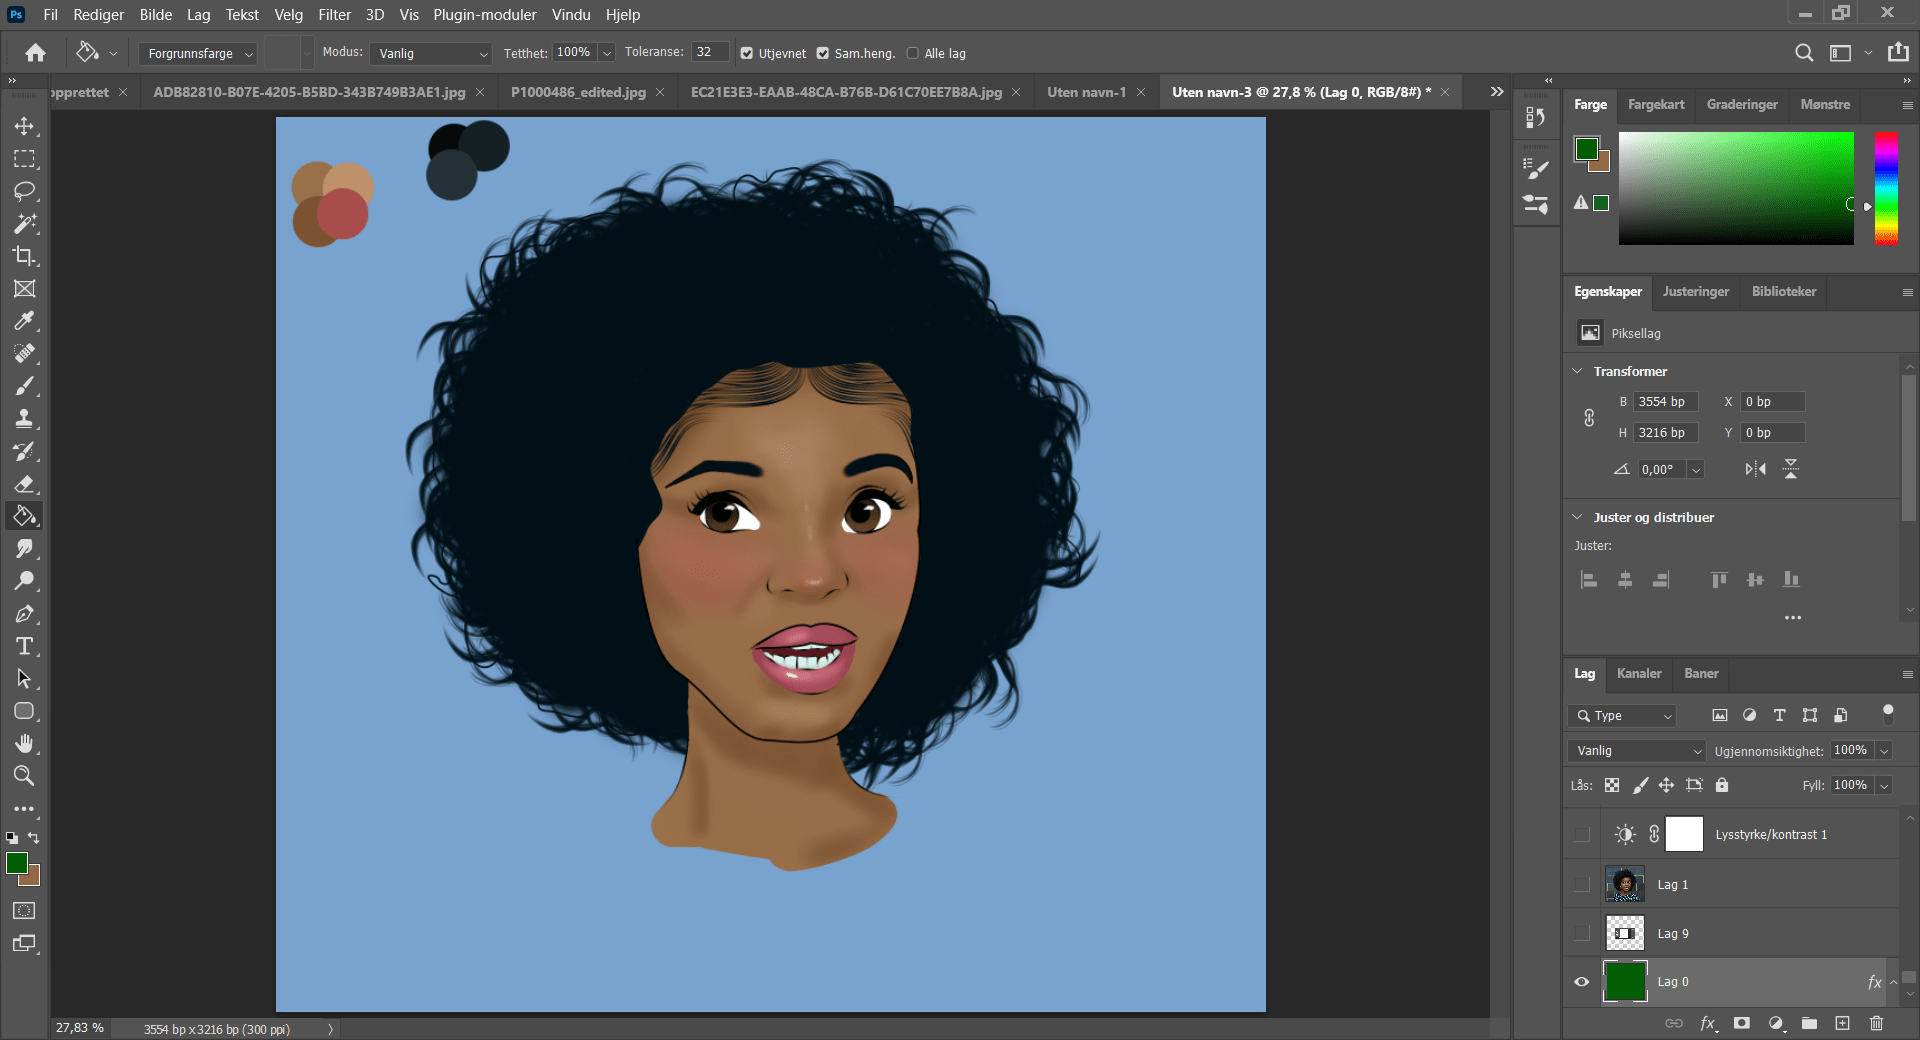 Photoshop CC 2021 software work in progress cartoon painting of black woman's head on a blue background